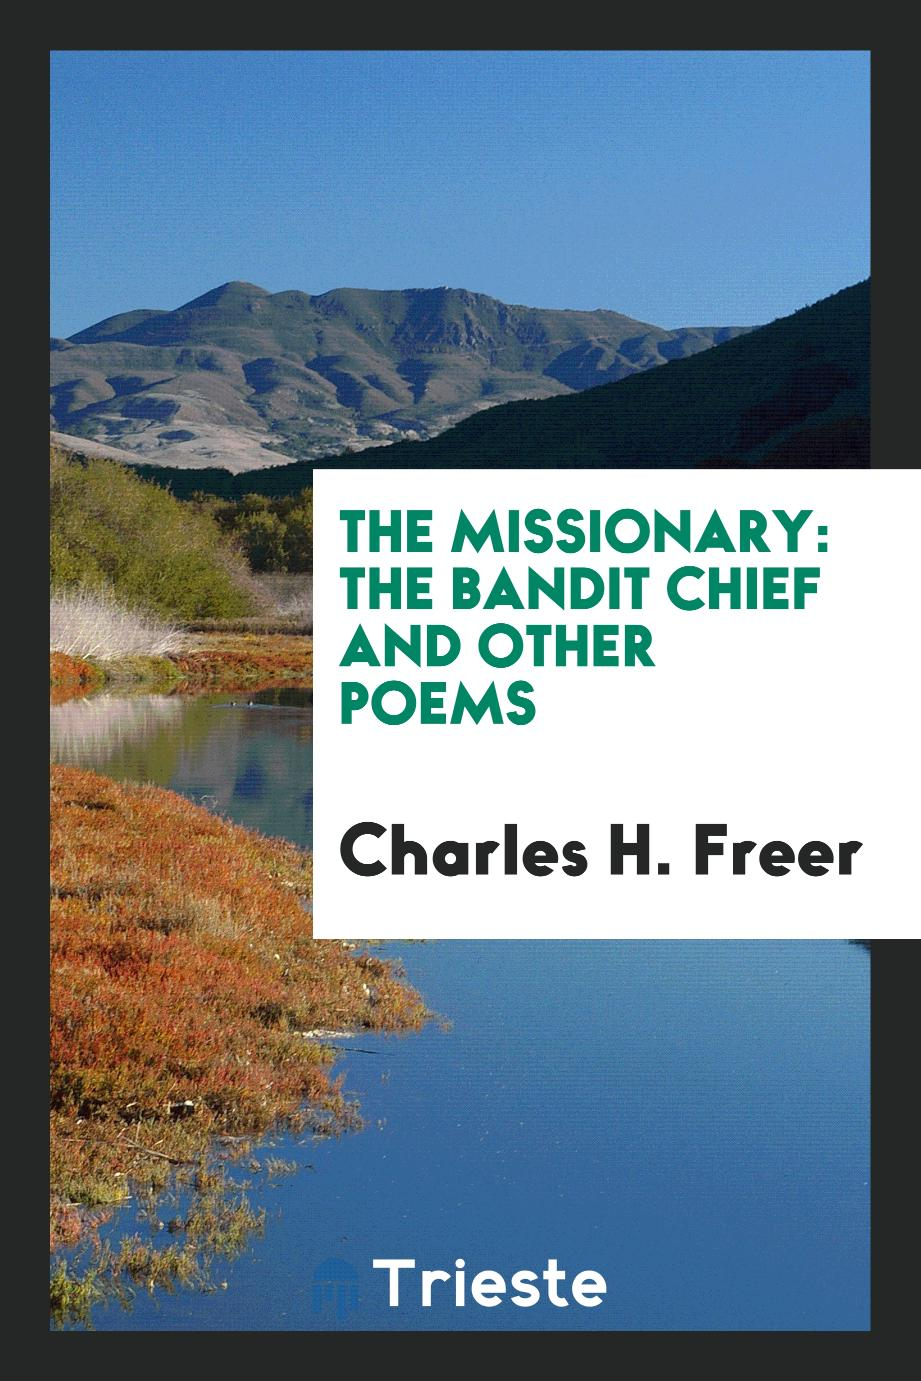 The missionary: The bandit chief and other poems